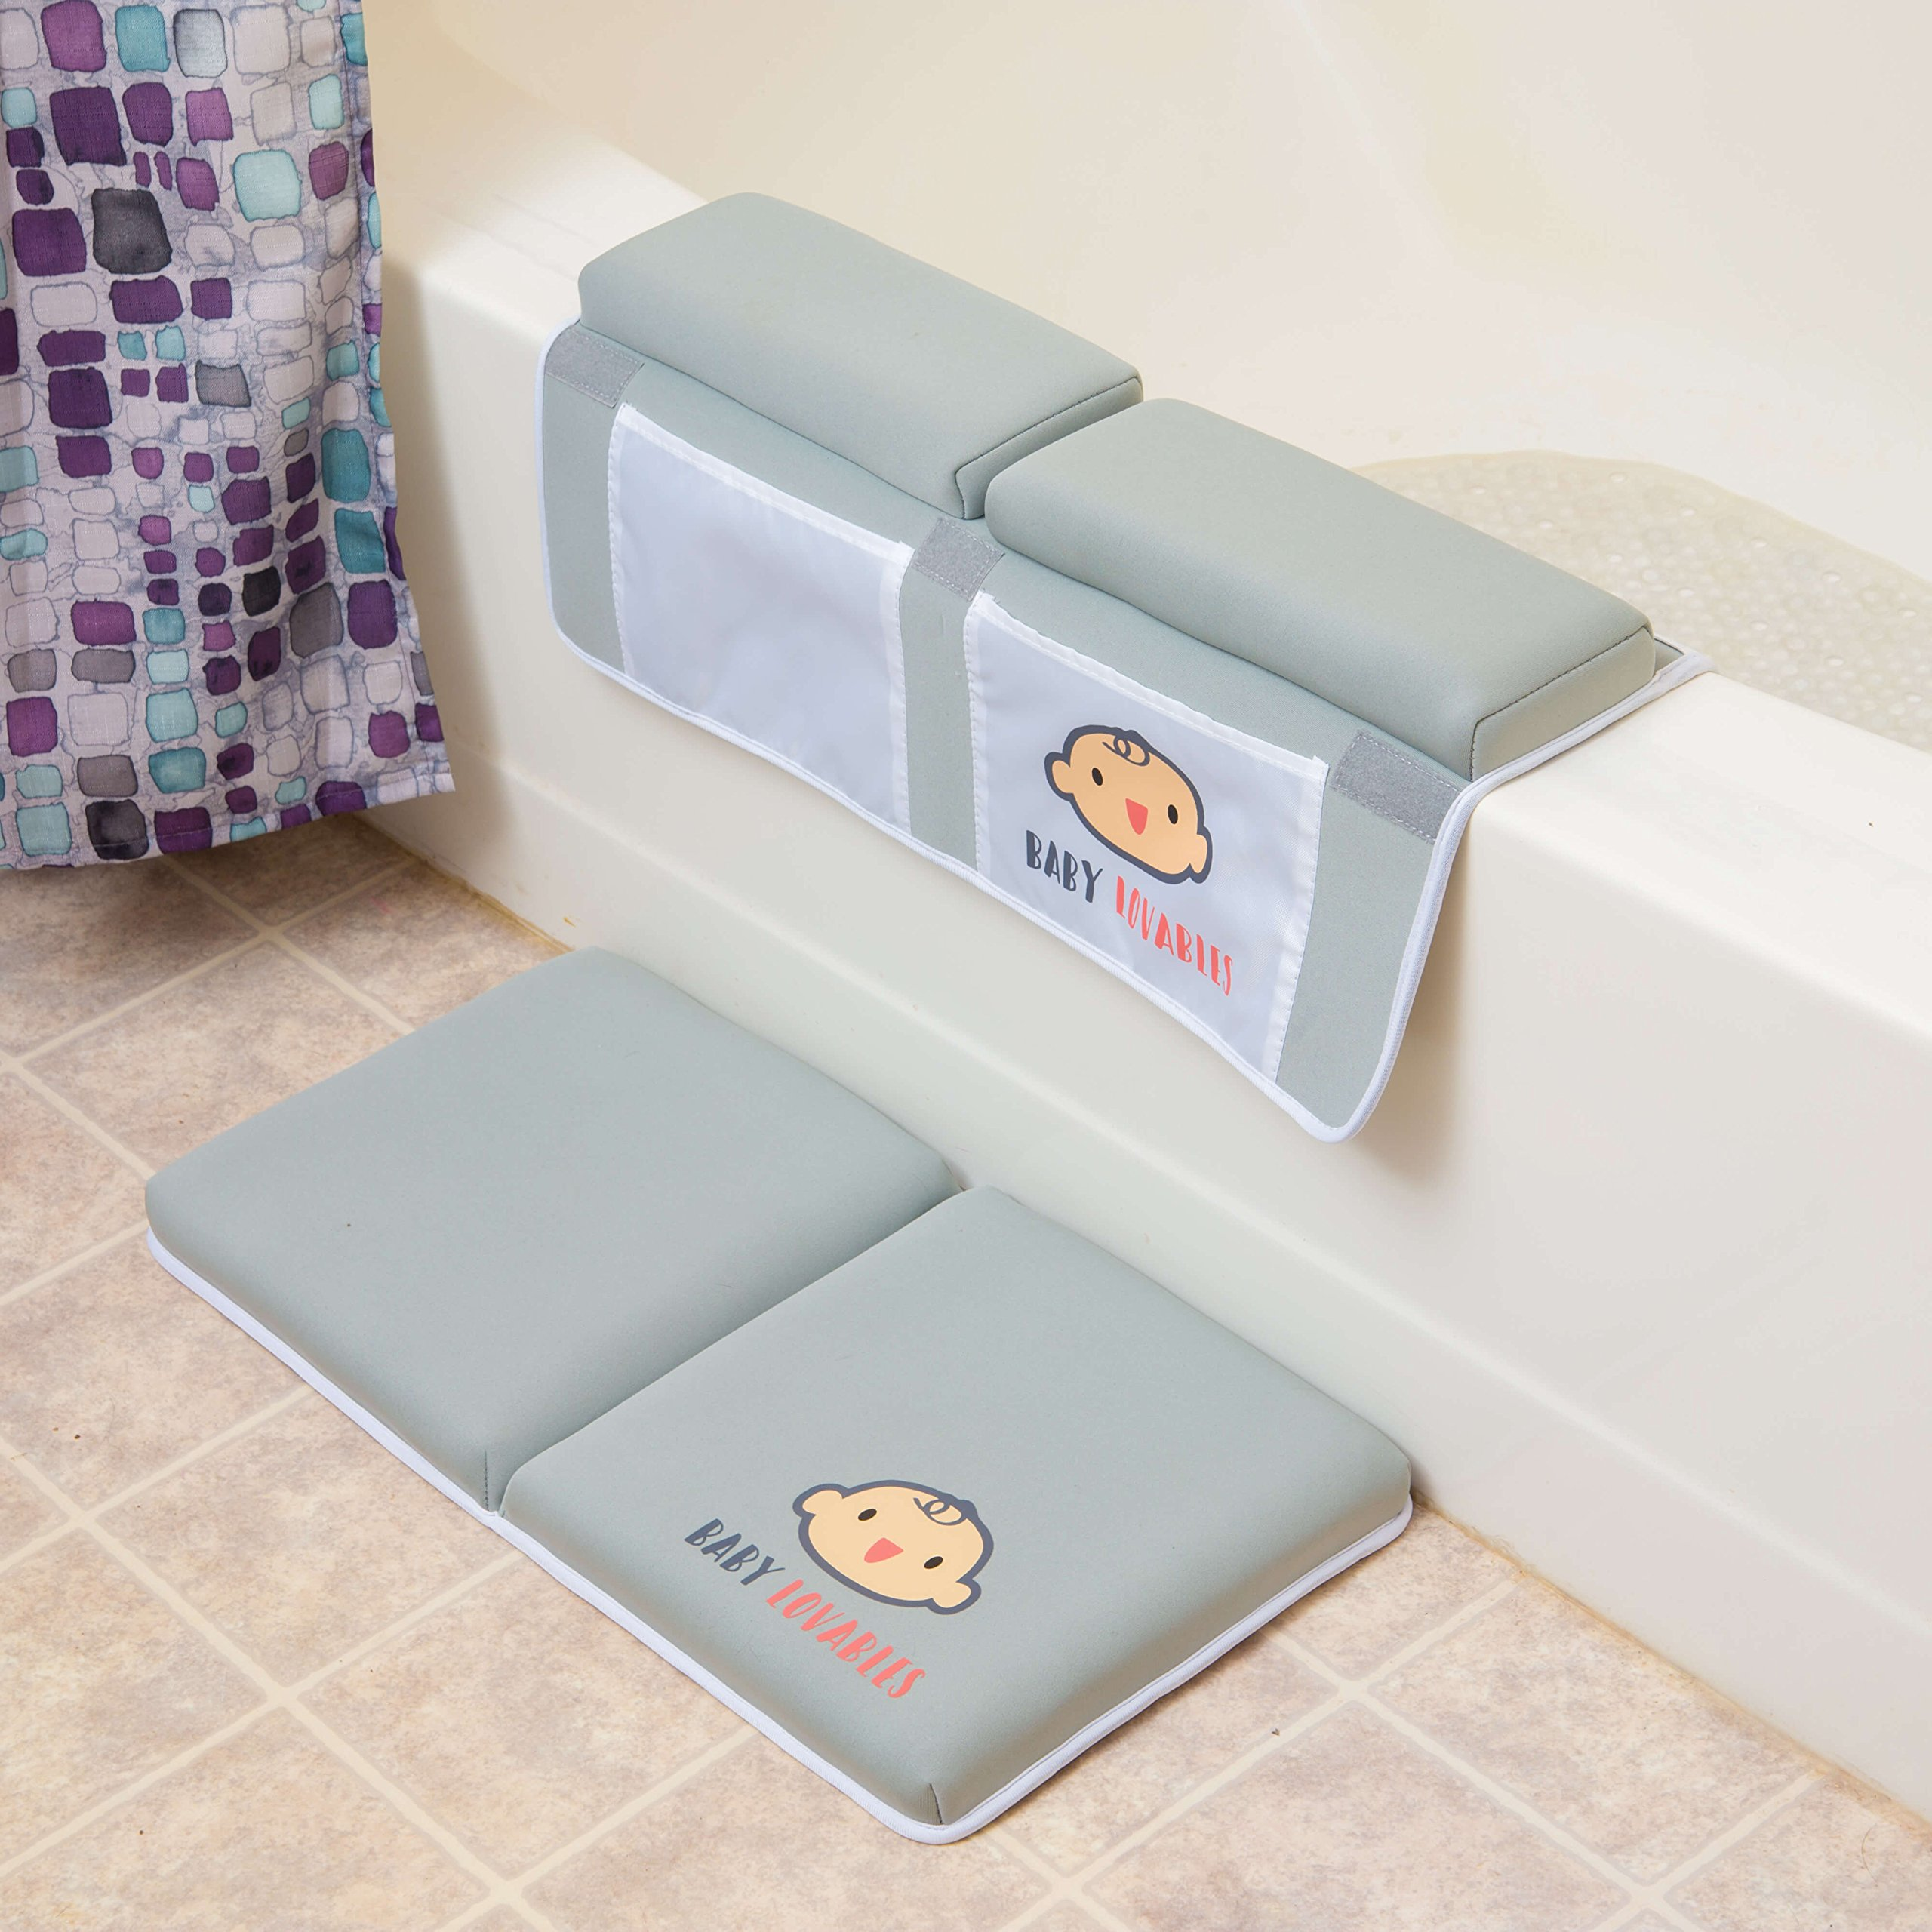 Bath Kneeler with Elbow pad Rest Set- Padded Knee mat for tub Bathing and Bathroom time. Bathtub Kneeling Waterproof Cushion mats for Infant or Baby Toy Accessories. Bathtime Knee Saver. Shower Gift. by BABY LOVABLES